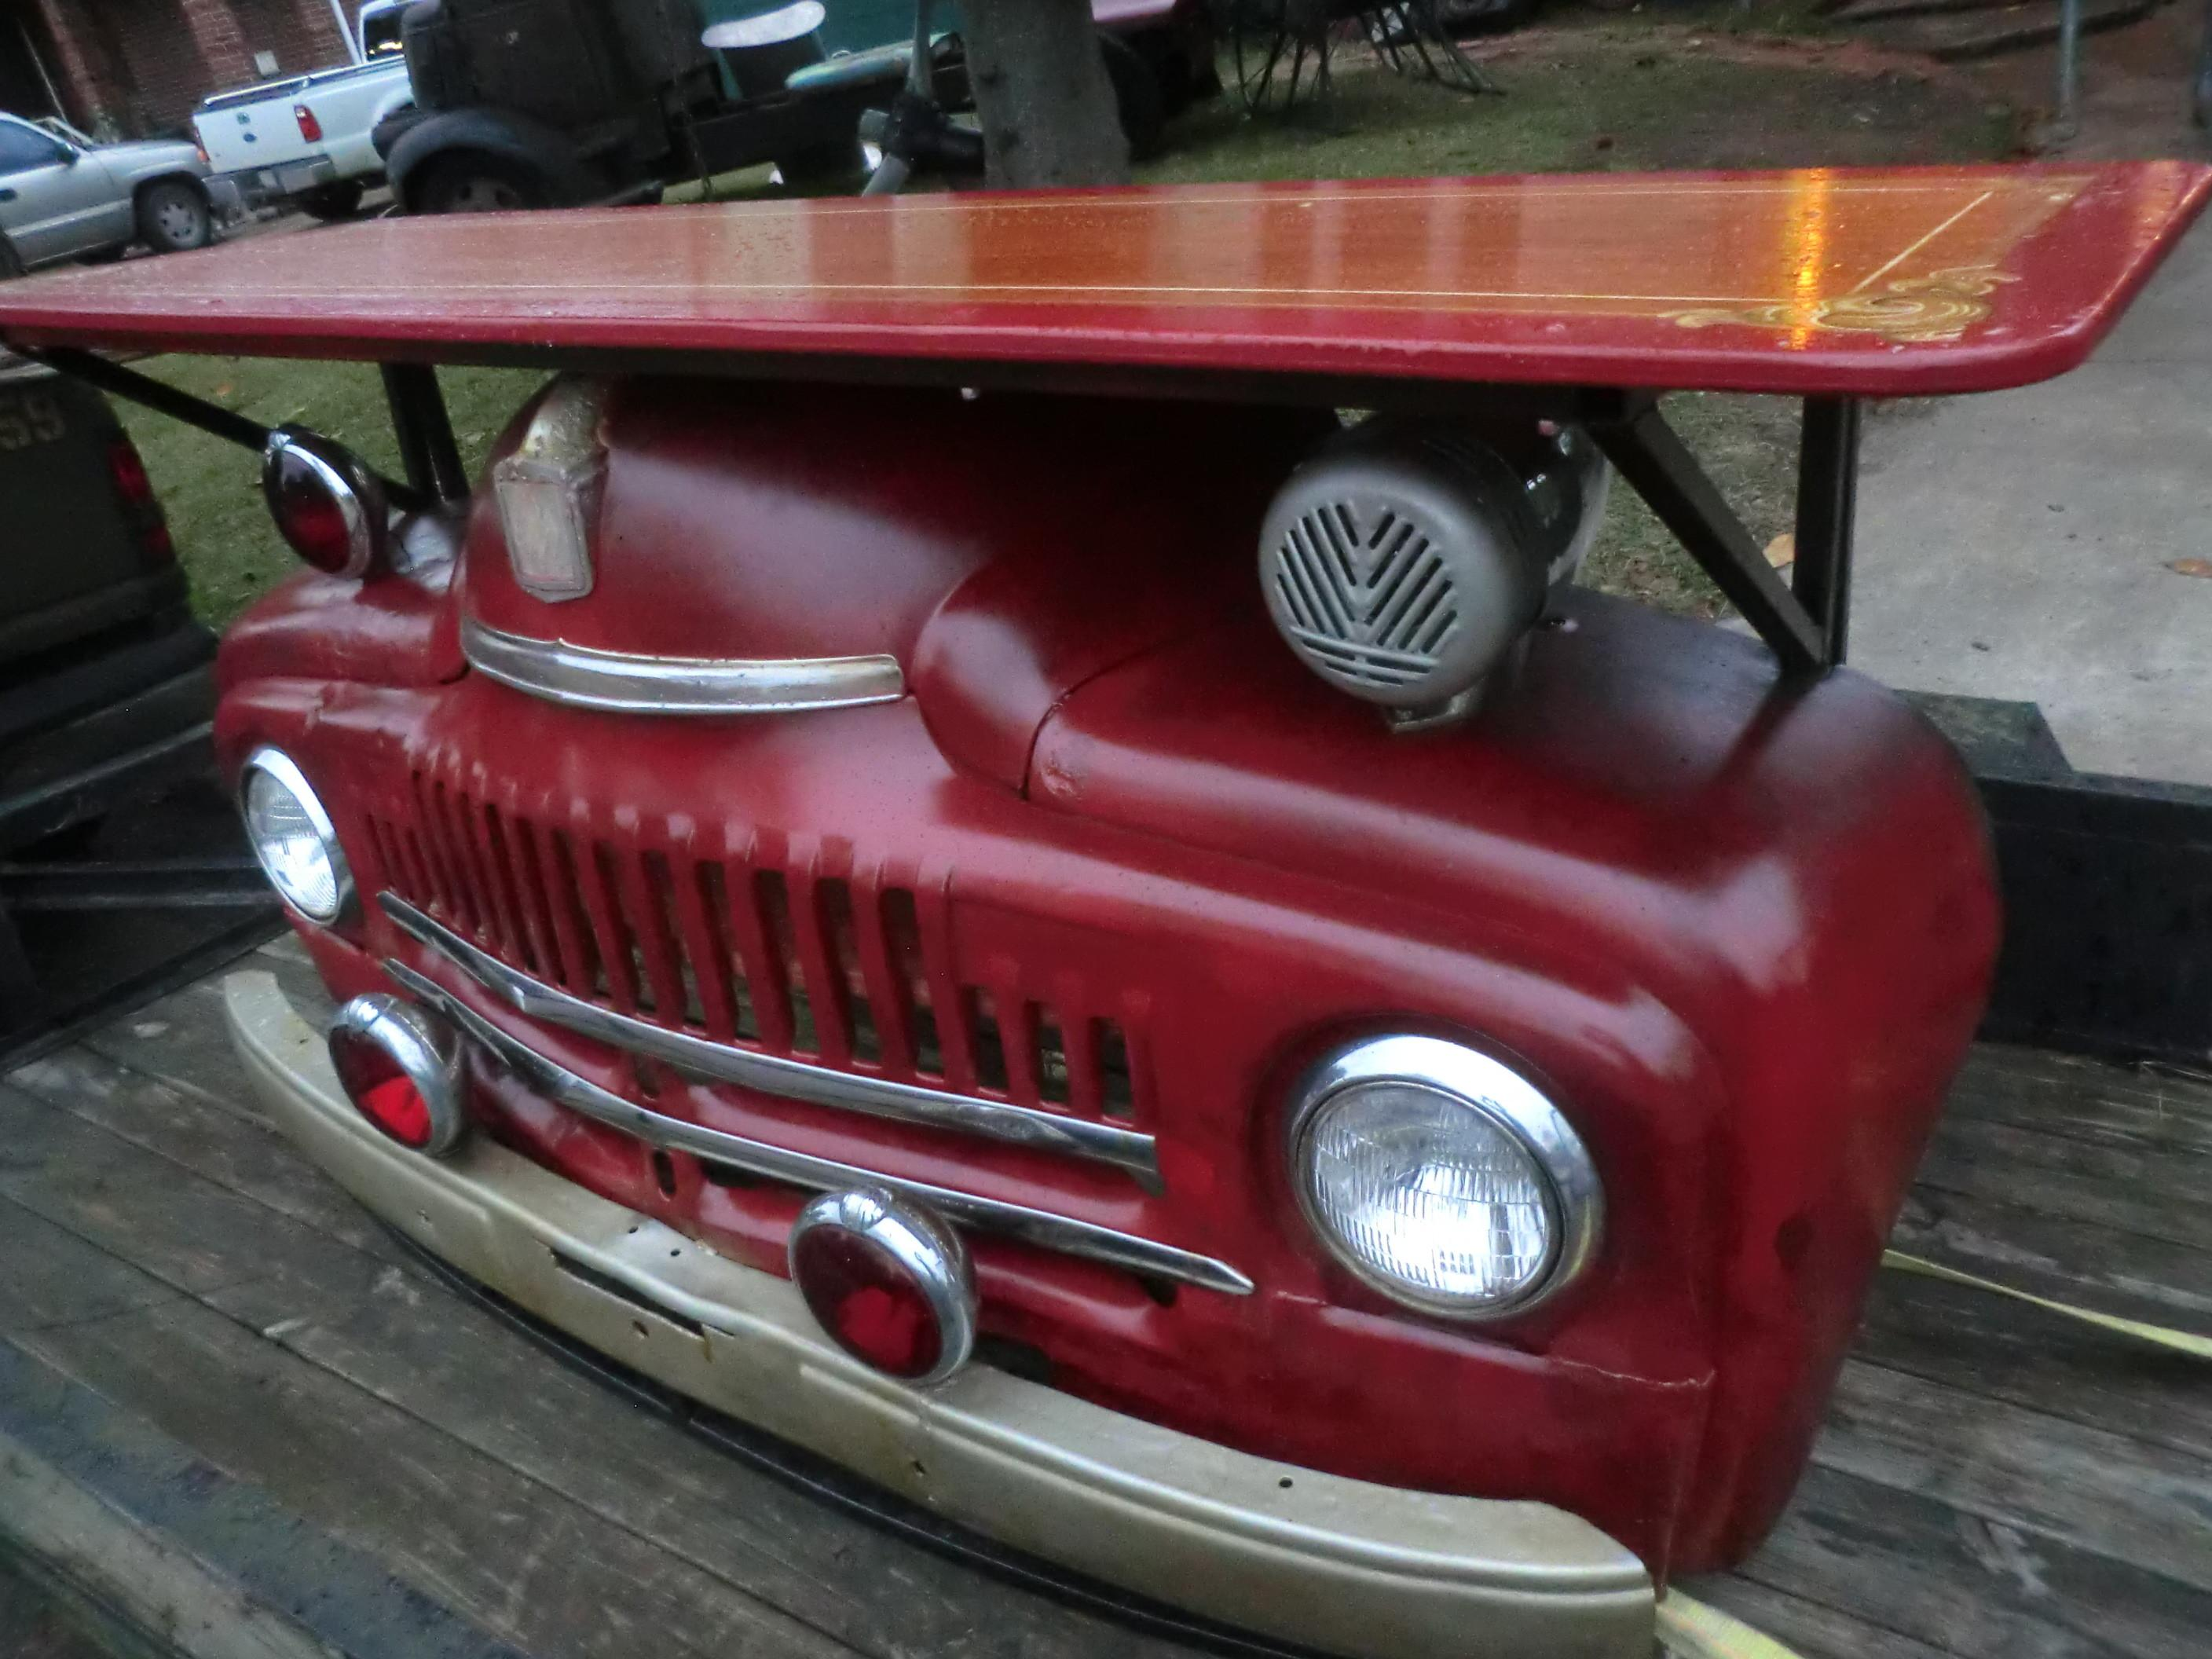 1950 International Harvester Truck Turned Into Fire